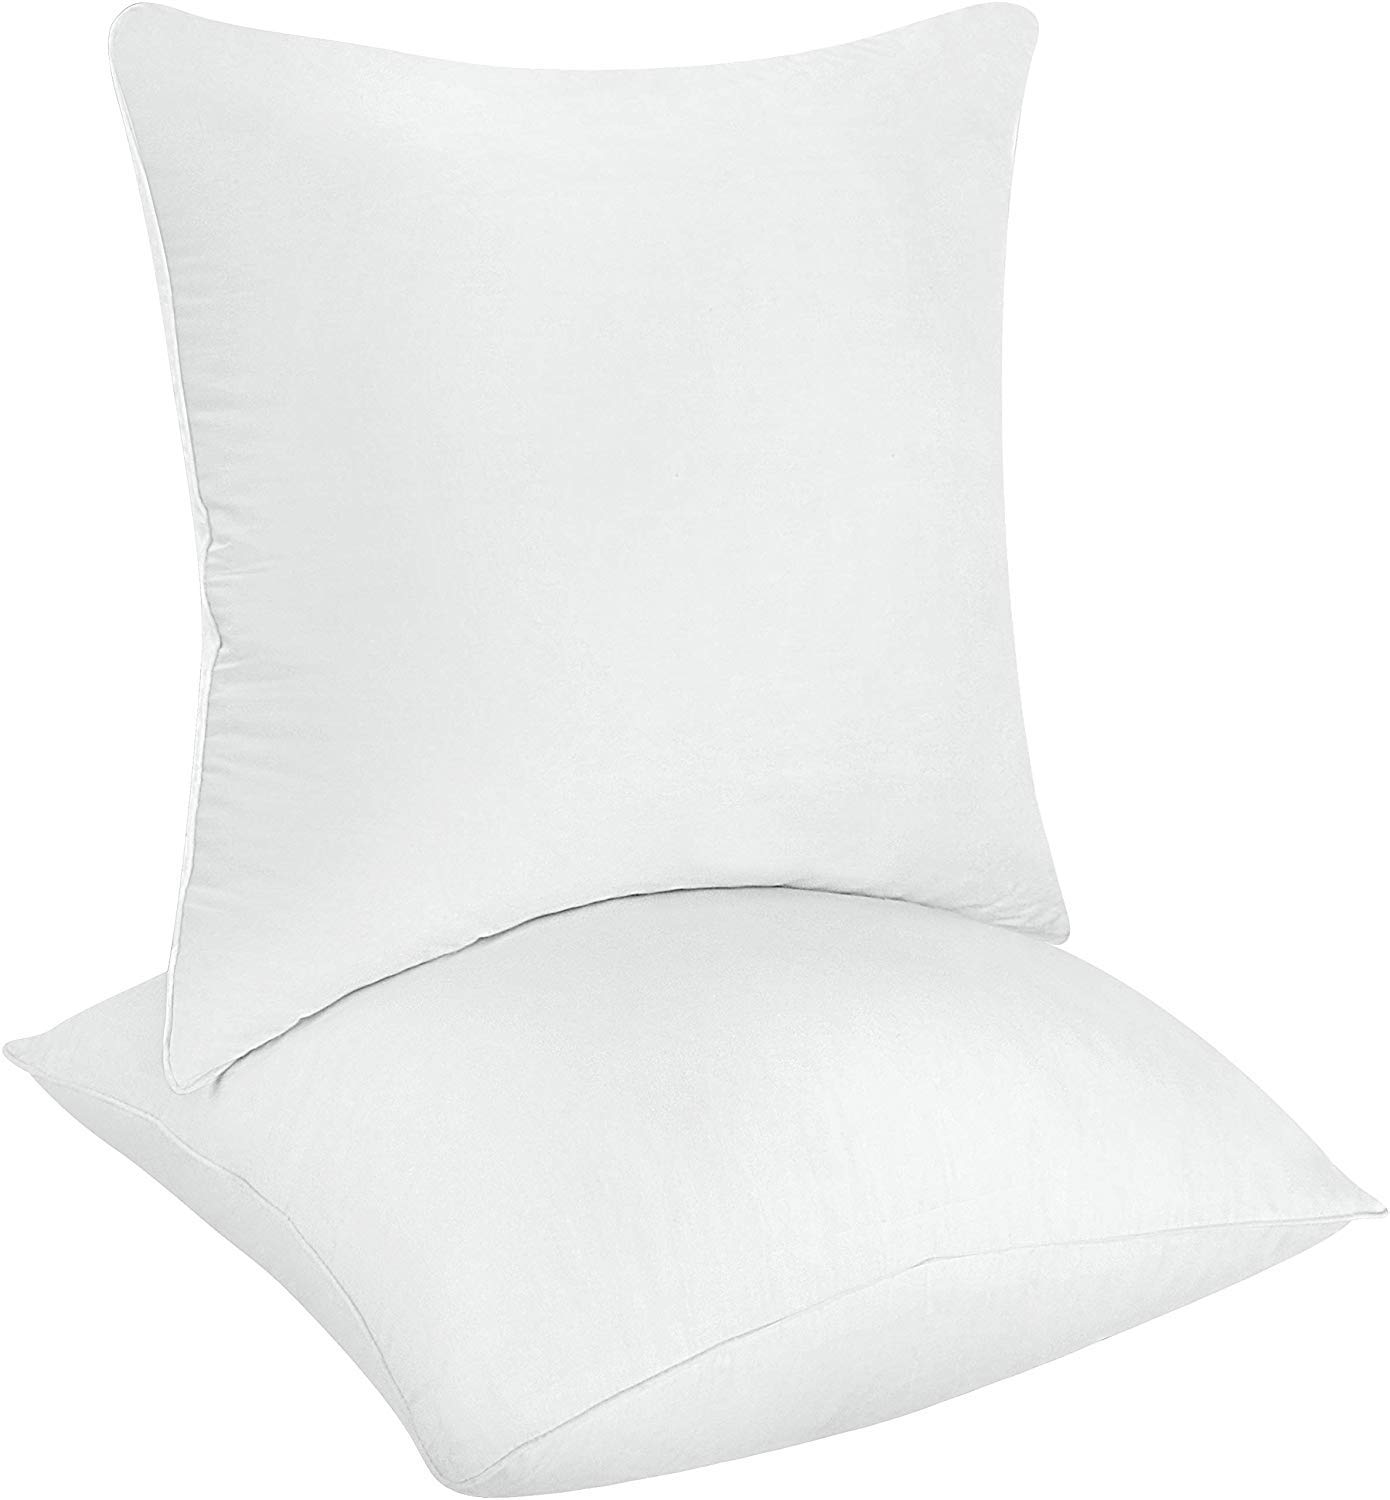 Utopia Bedding Throw Pillows Insert (Pack of 2, White) - 22 x 22 Inches Bed and Couch Pillows - Indoor Decorative Pillows by Utopia Bedding